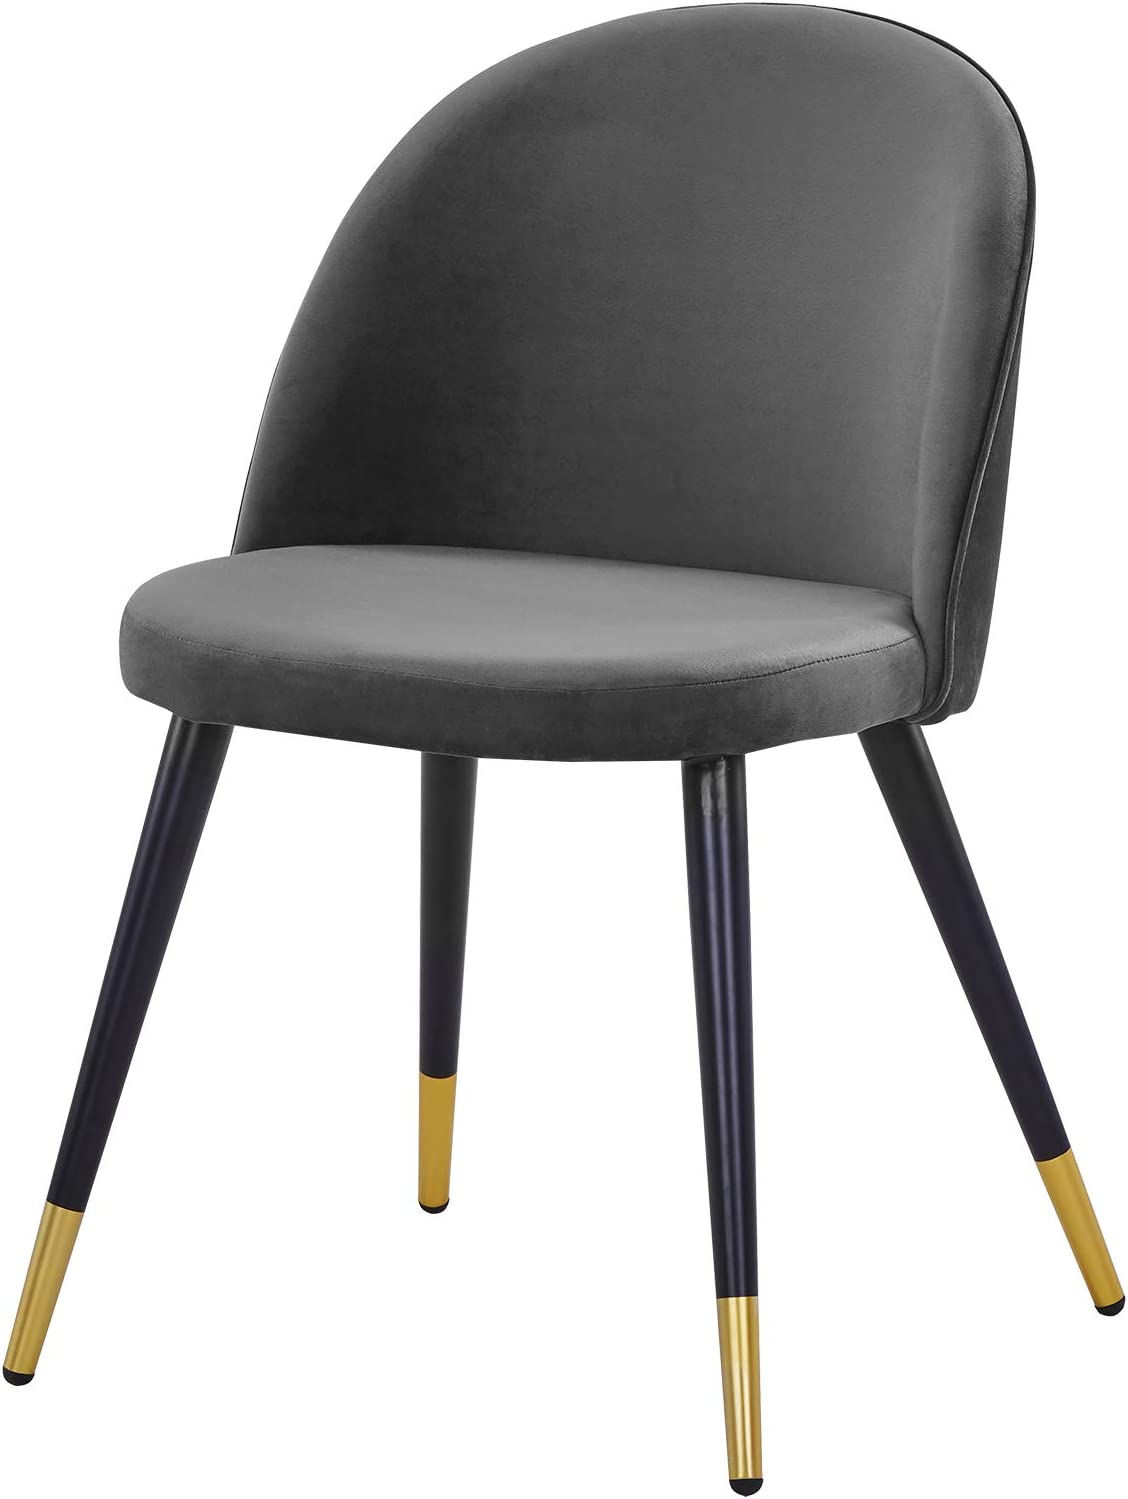 EUGAD Dining Room Chairs Set of 2 PCS Kitchen Chairs Dark Grey with Back Support and Soft Velvet Seat Steel Legs Living Room Chairs 0327BY-2